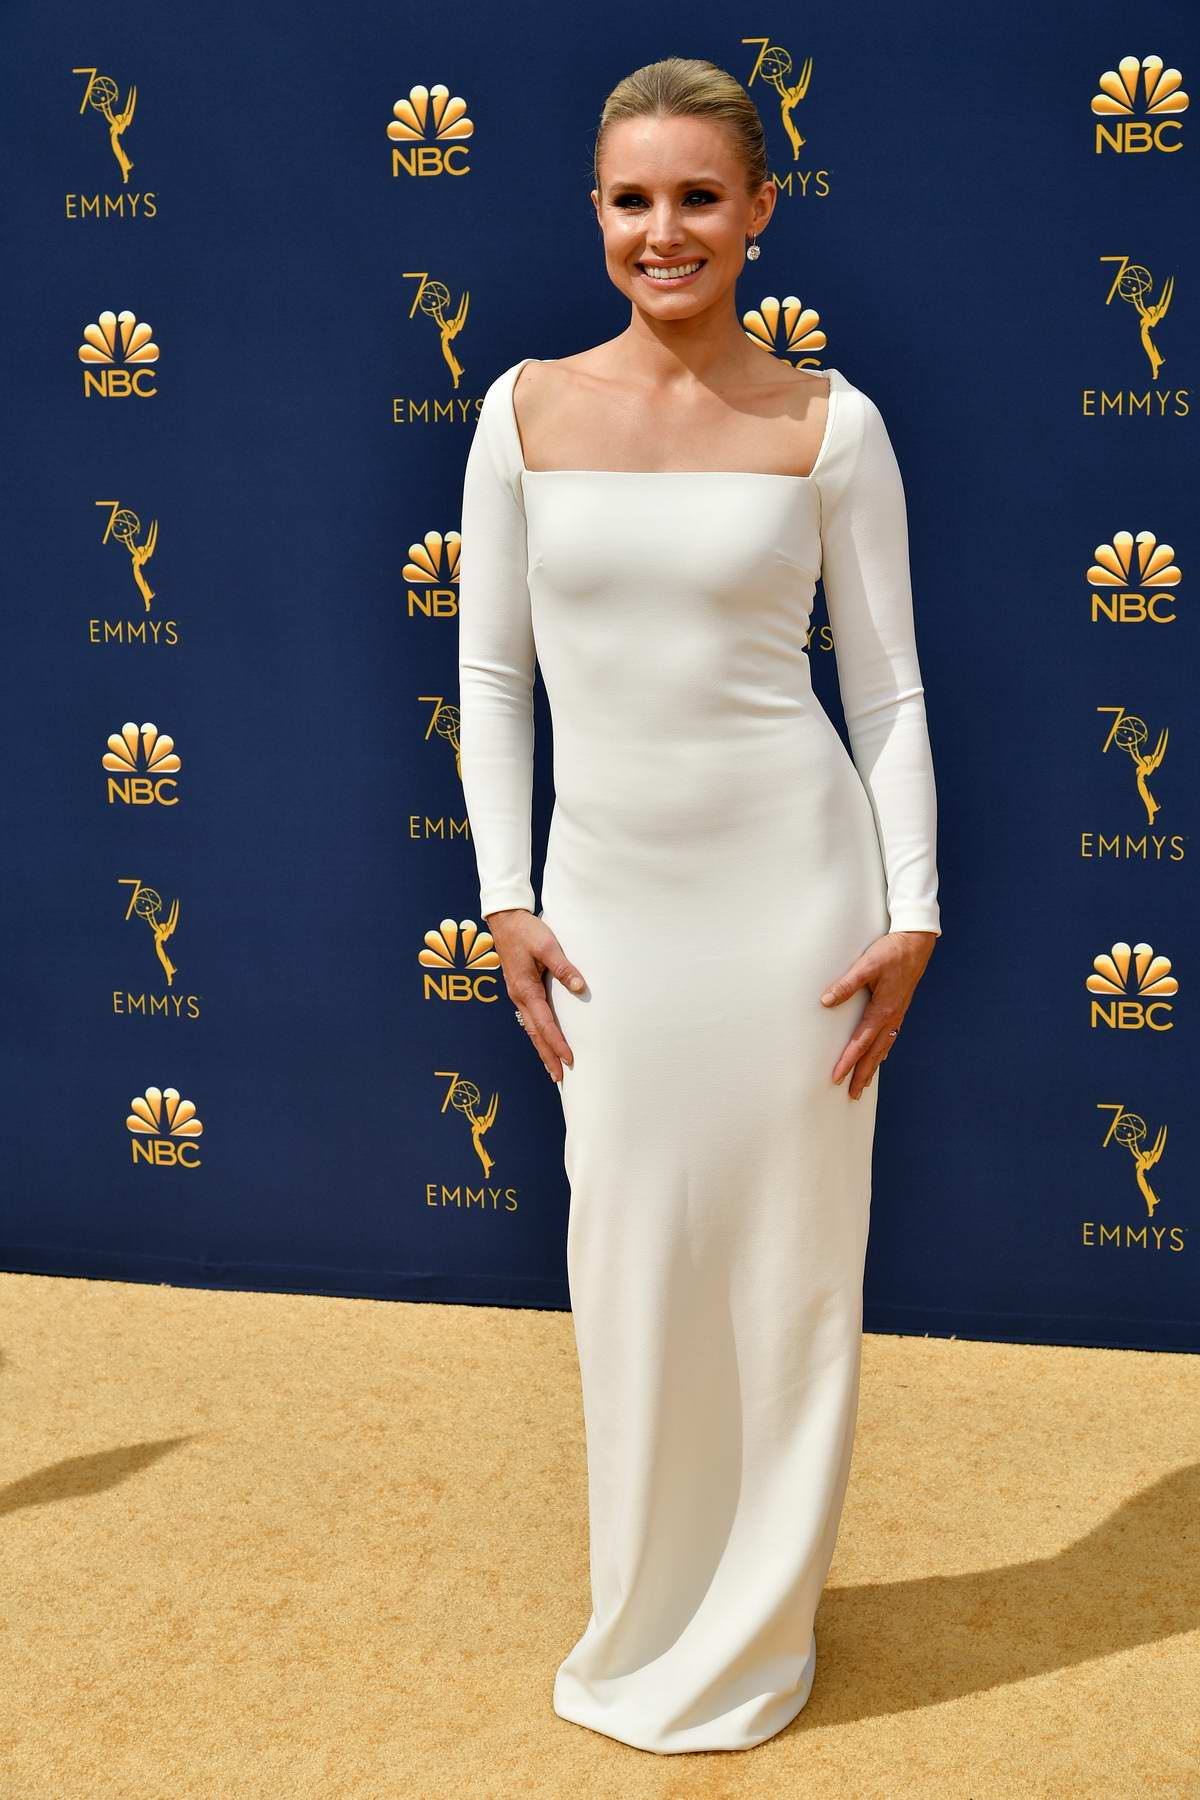 Kristen Bell attends the 70th Primetime EMMY Awards (EMMYS 2018) at Microsoft Theater in Los Angeles